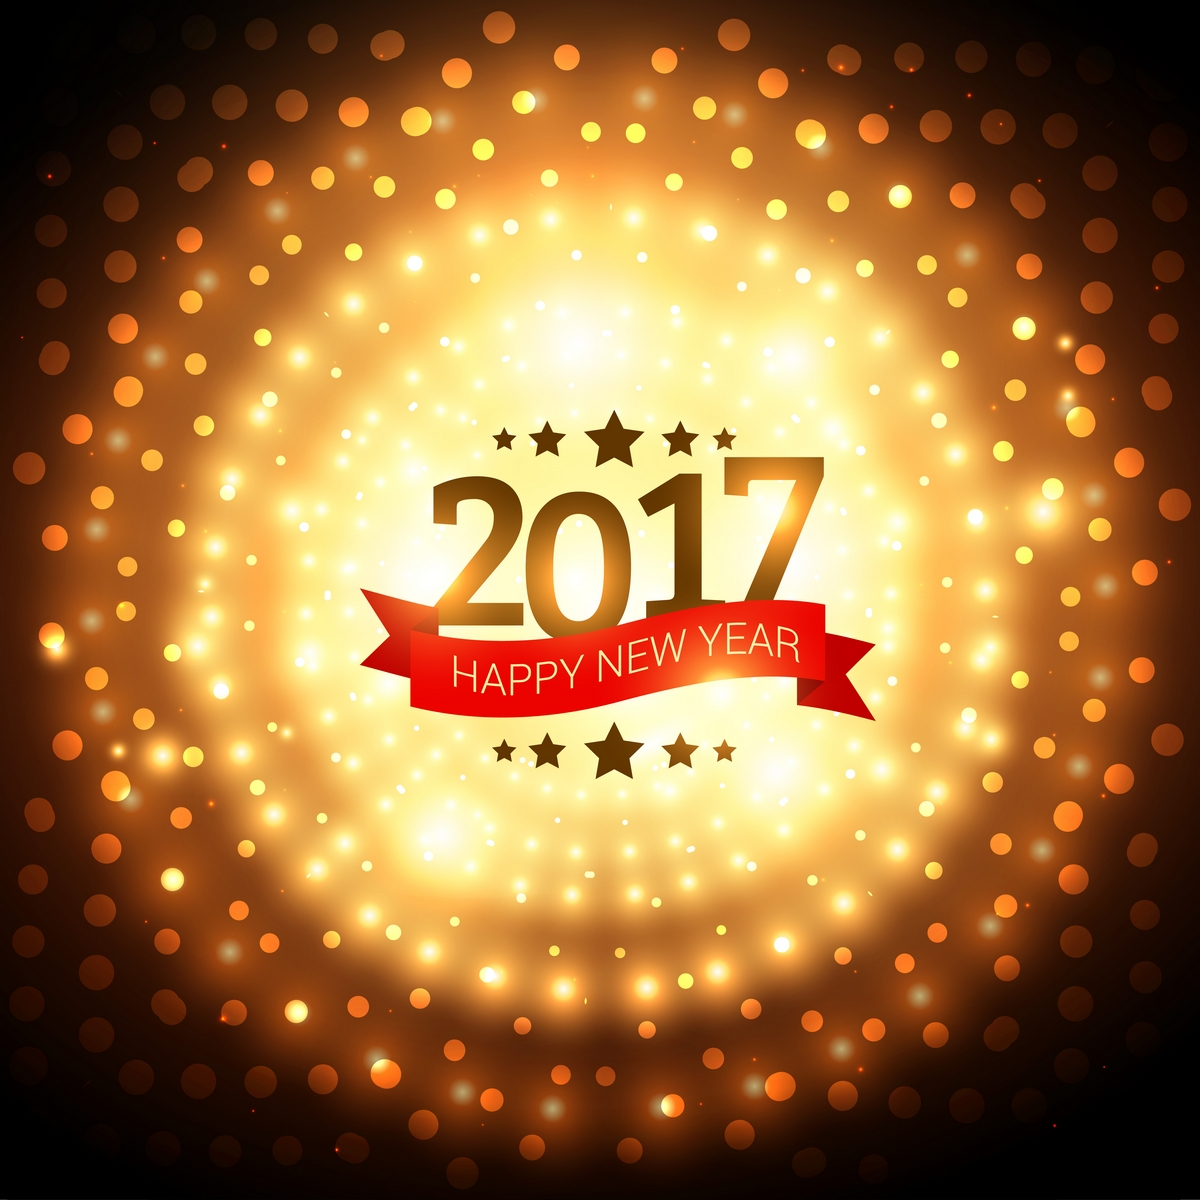 Happy New Year 2017 Text Messages Quotes Wishes Happy New Year 2017